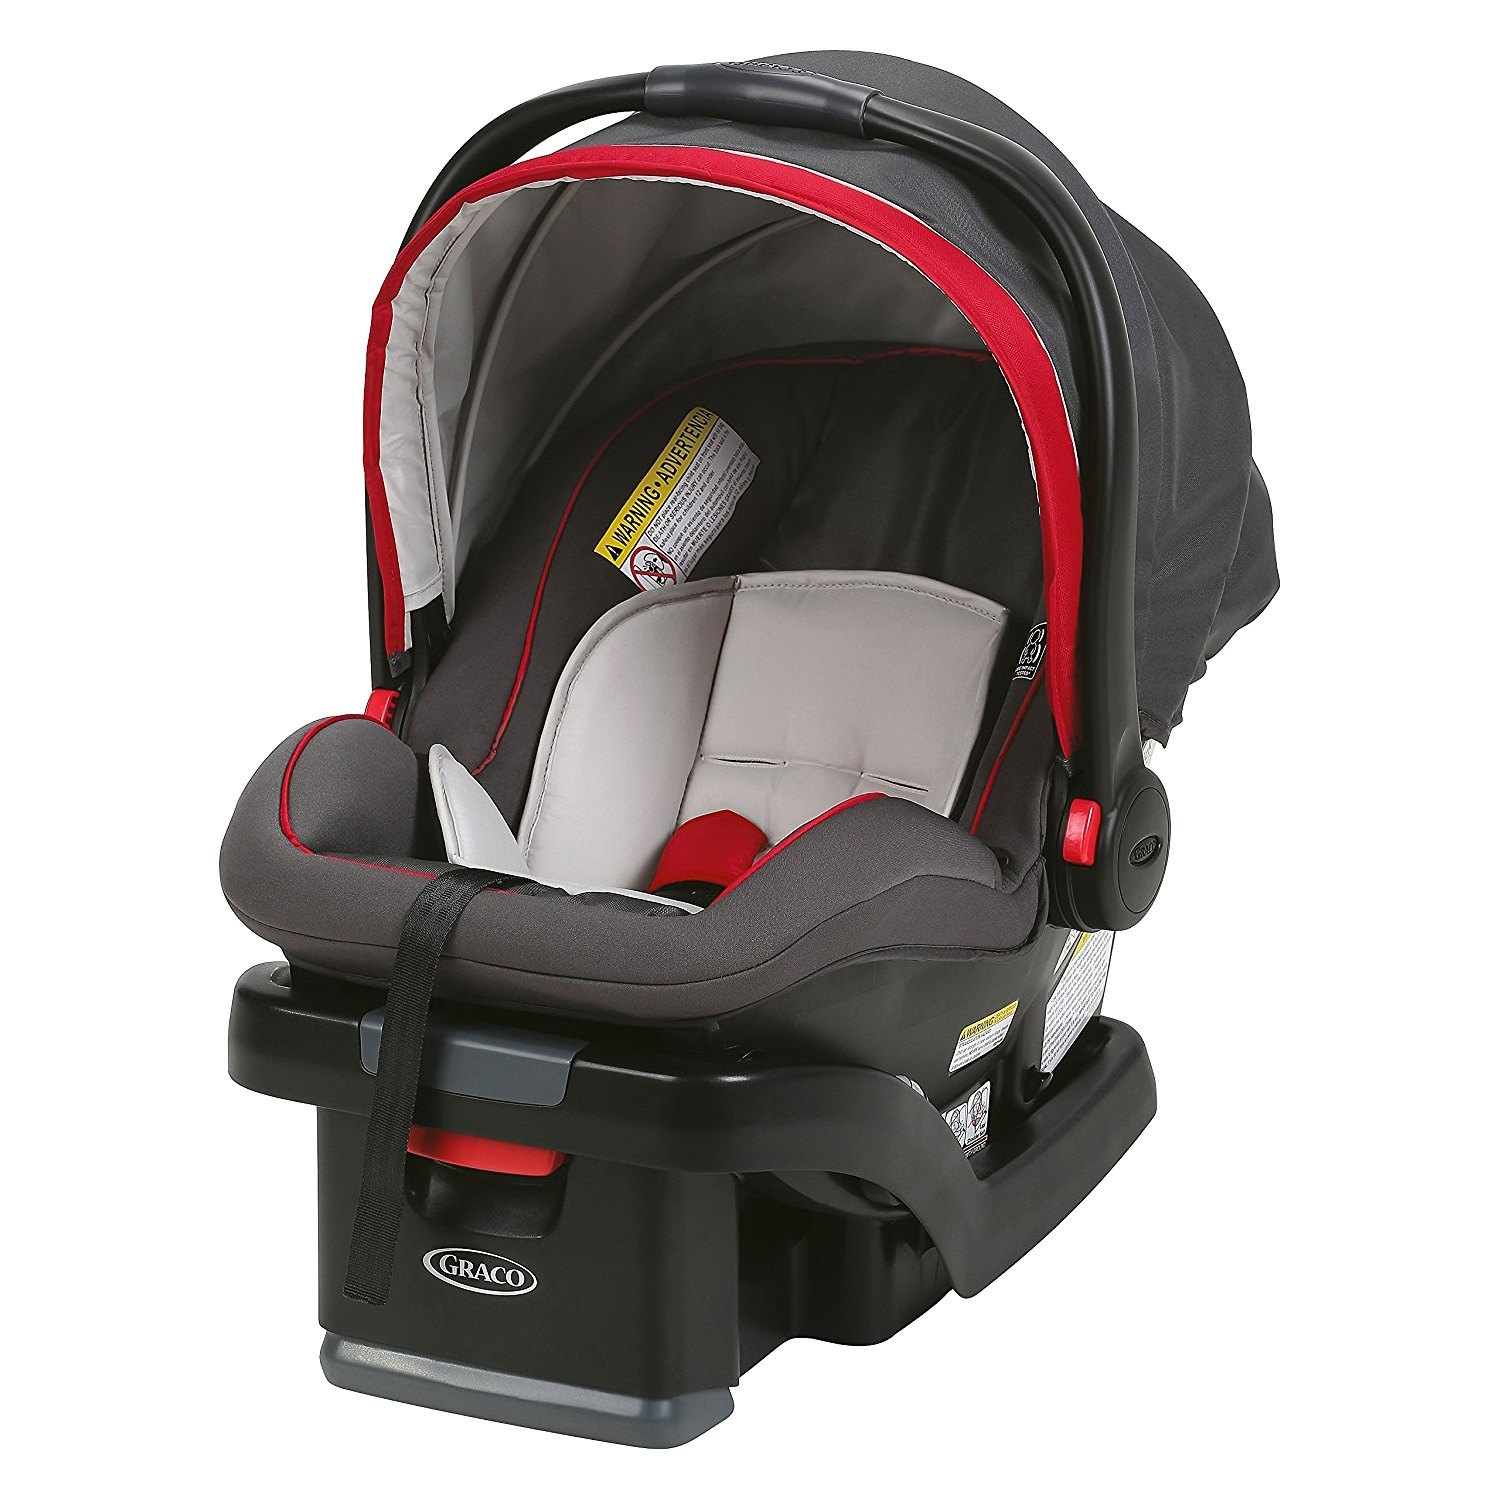 graco baby snugride snuglock 35 infant car seat. Black Bedroom Furniture Sets. Home Design Ideas